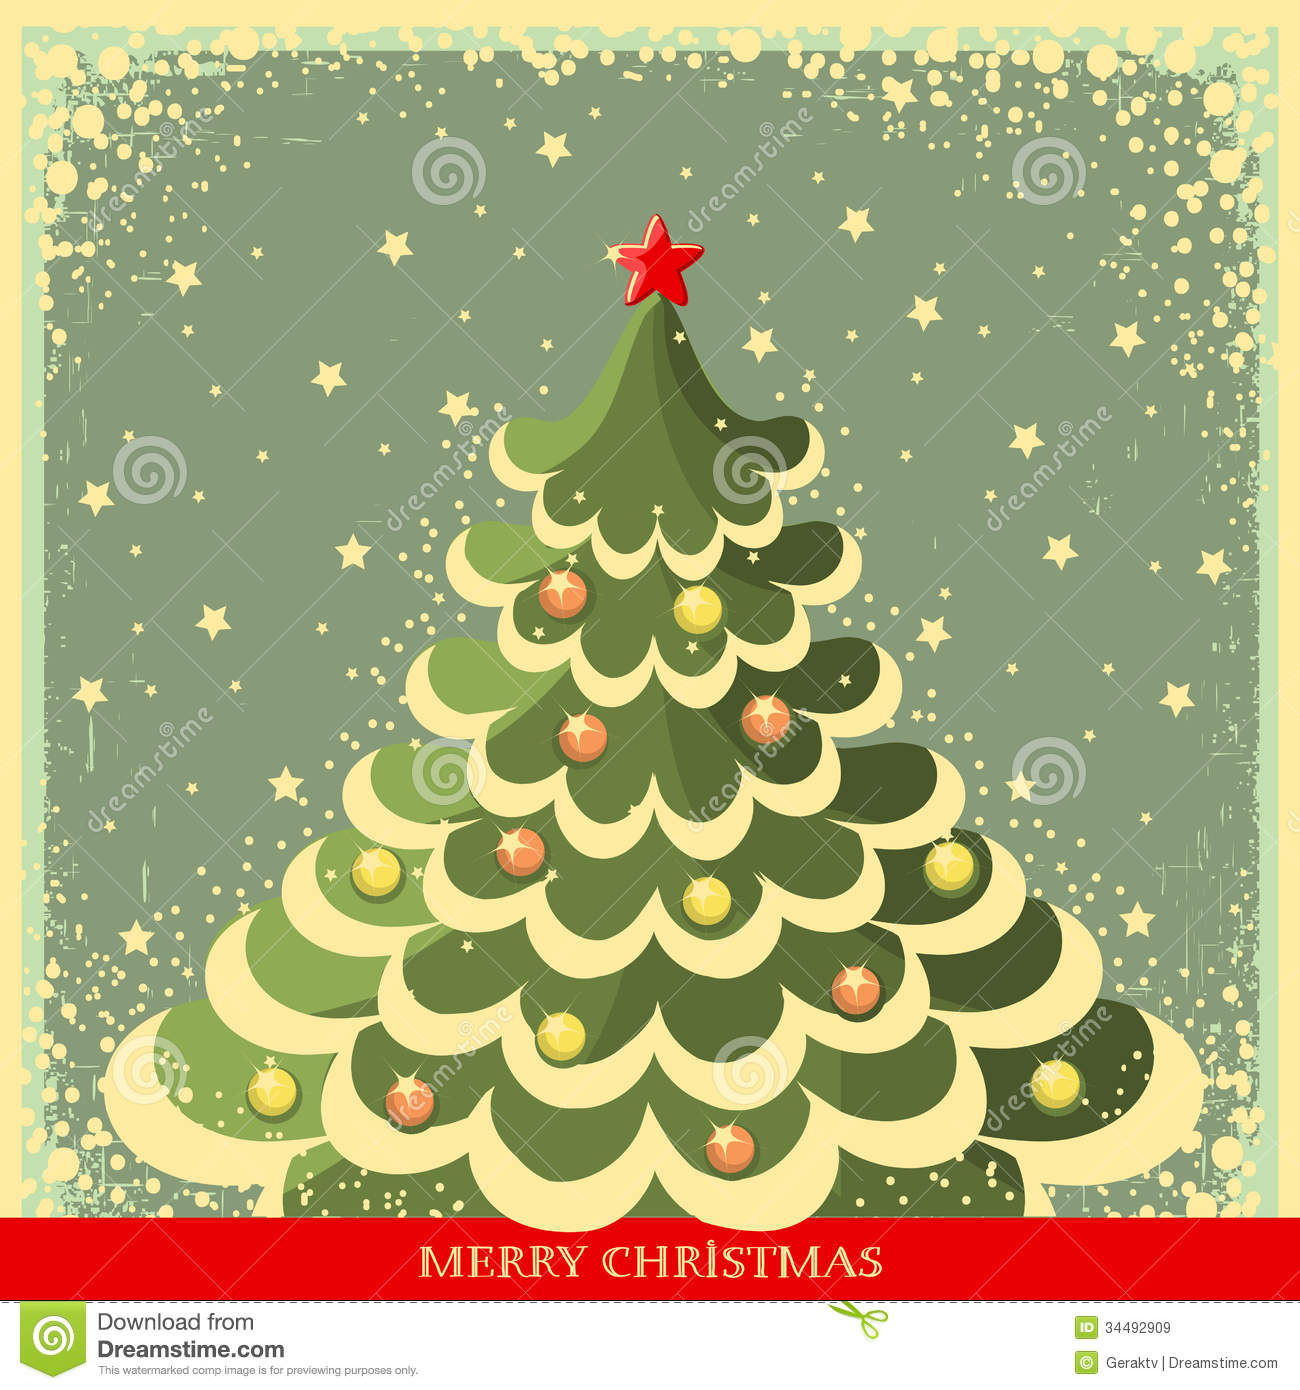 Vintage Christmas Background With Tree Stock Vector Illustration